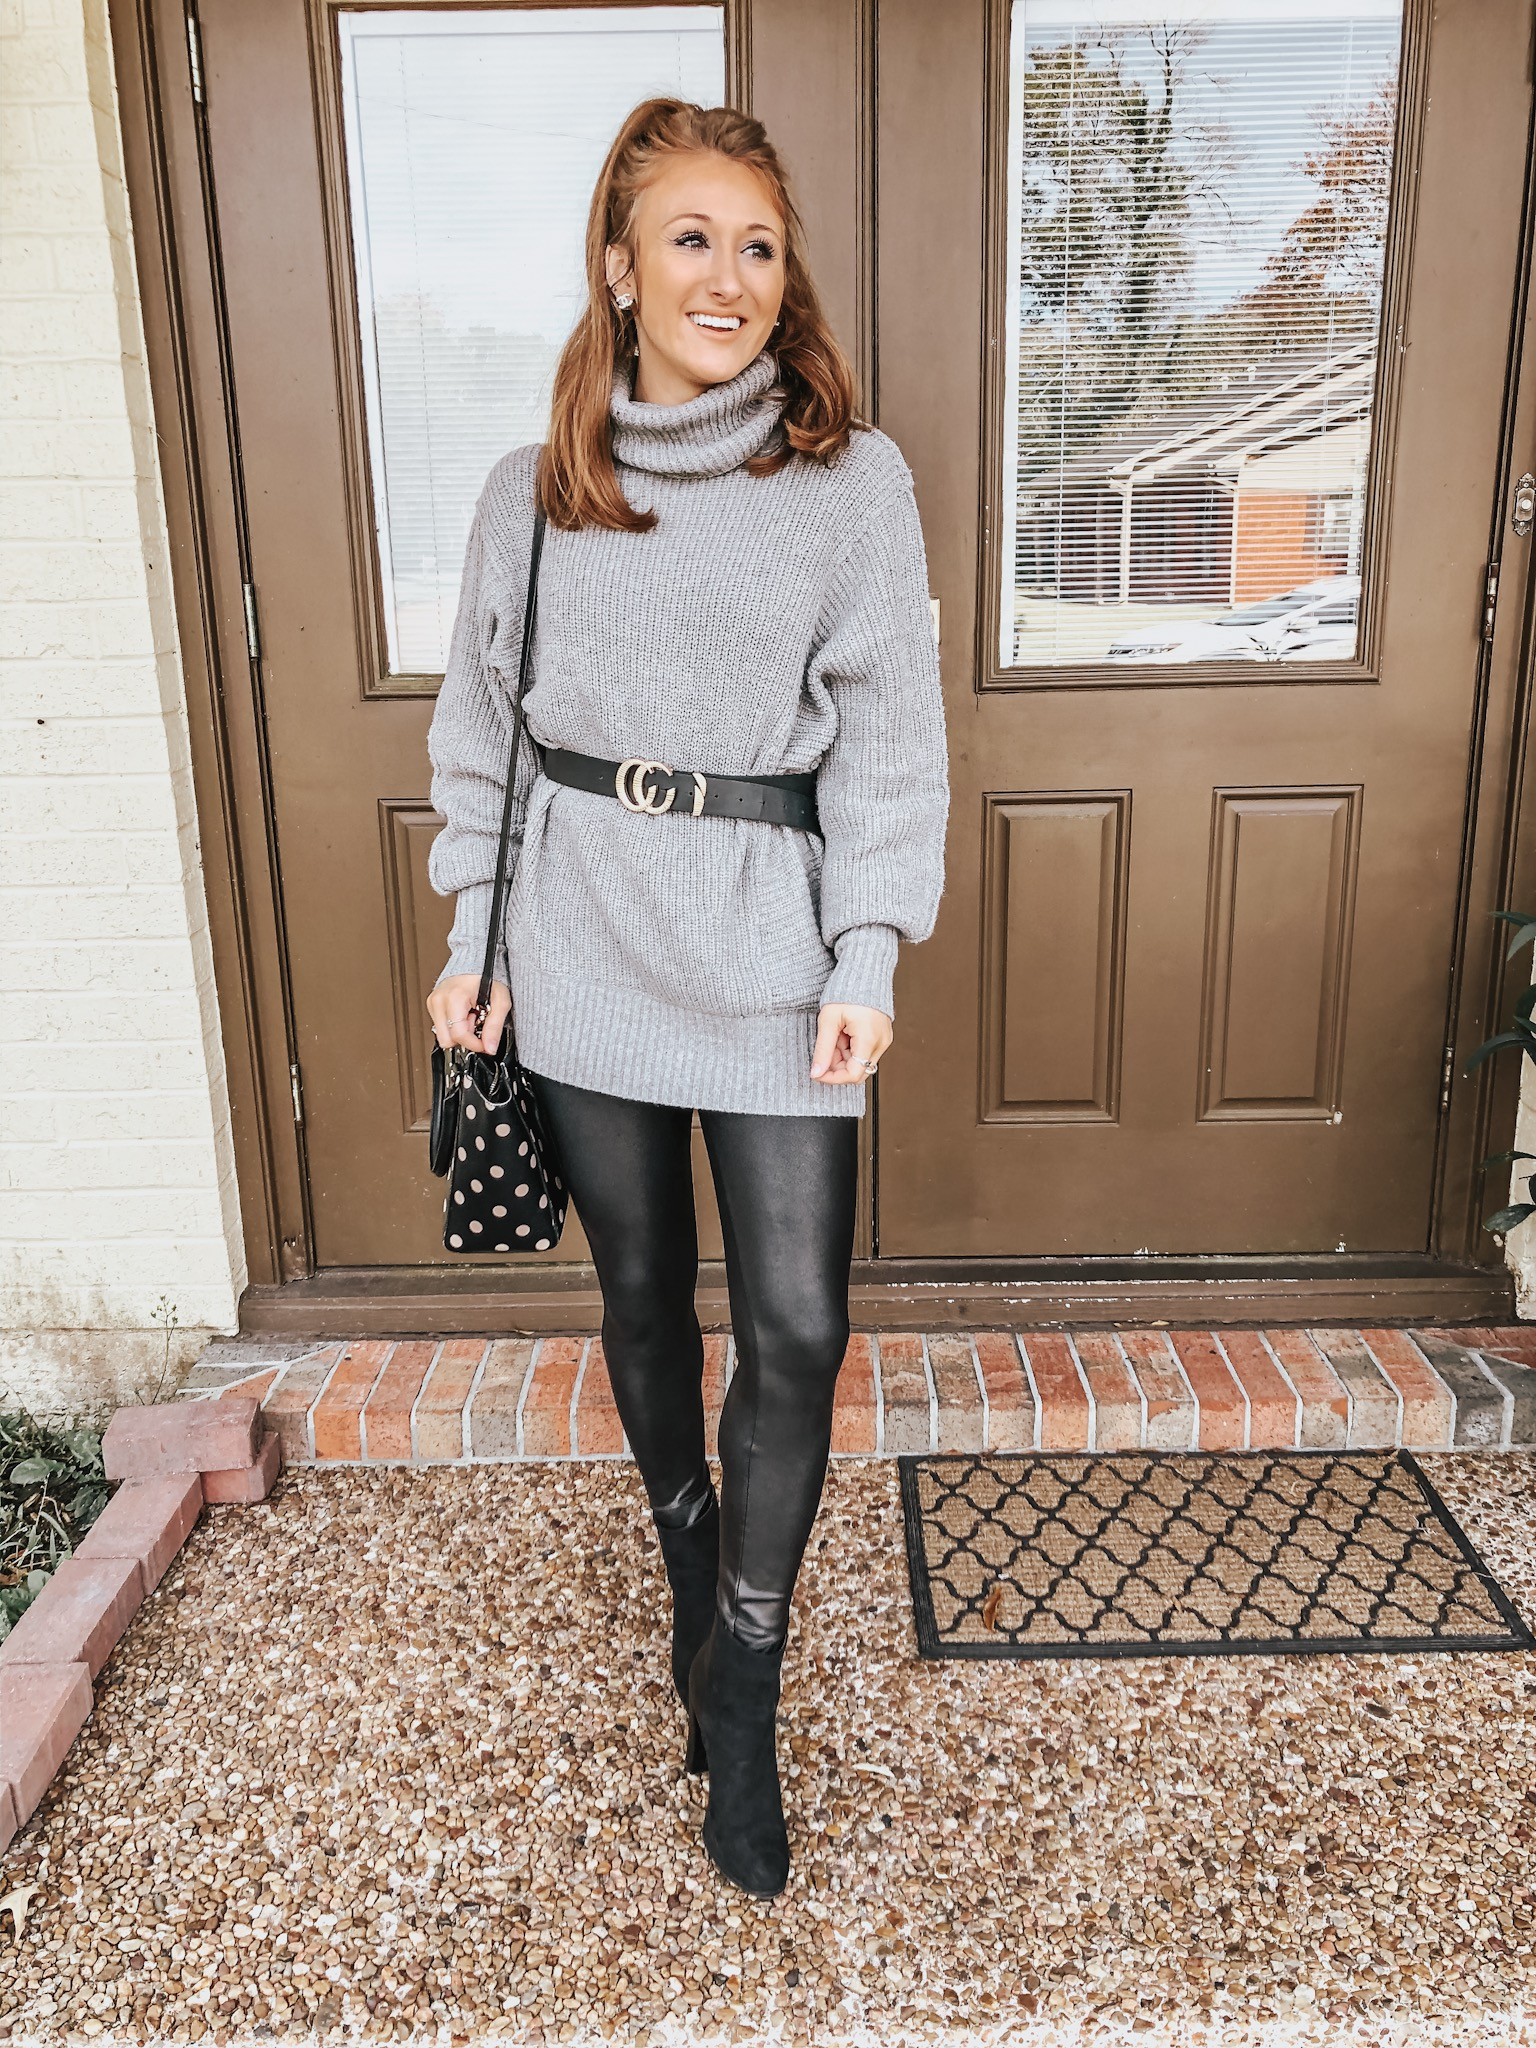 Carrington of Chaos and Coffee in a gray sweater dress, black faux Gucci belt, Spanx faux leather leggings and black booties